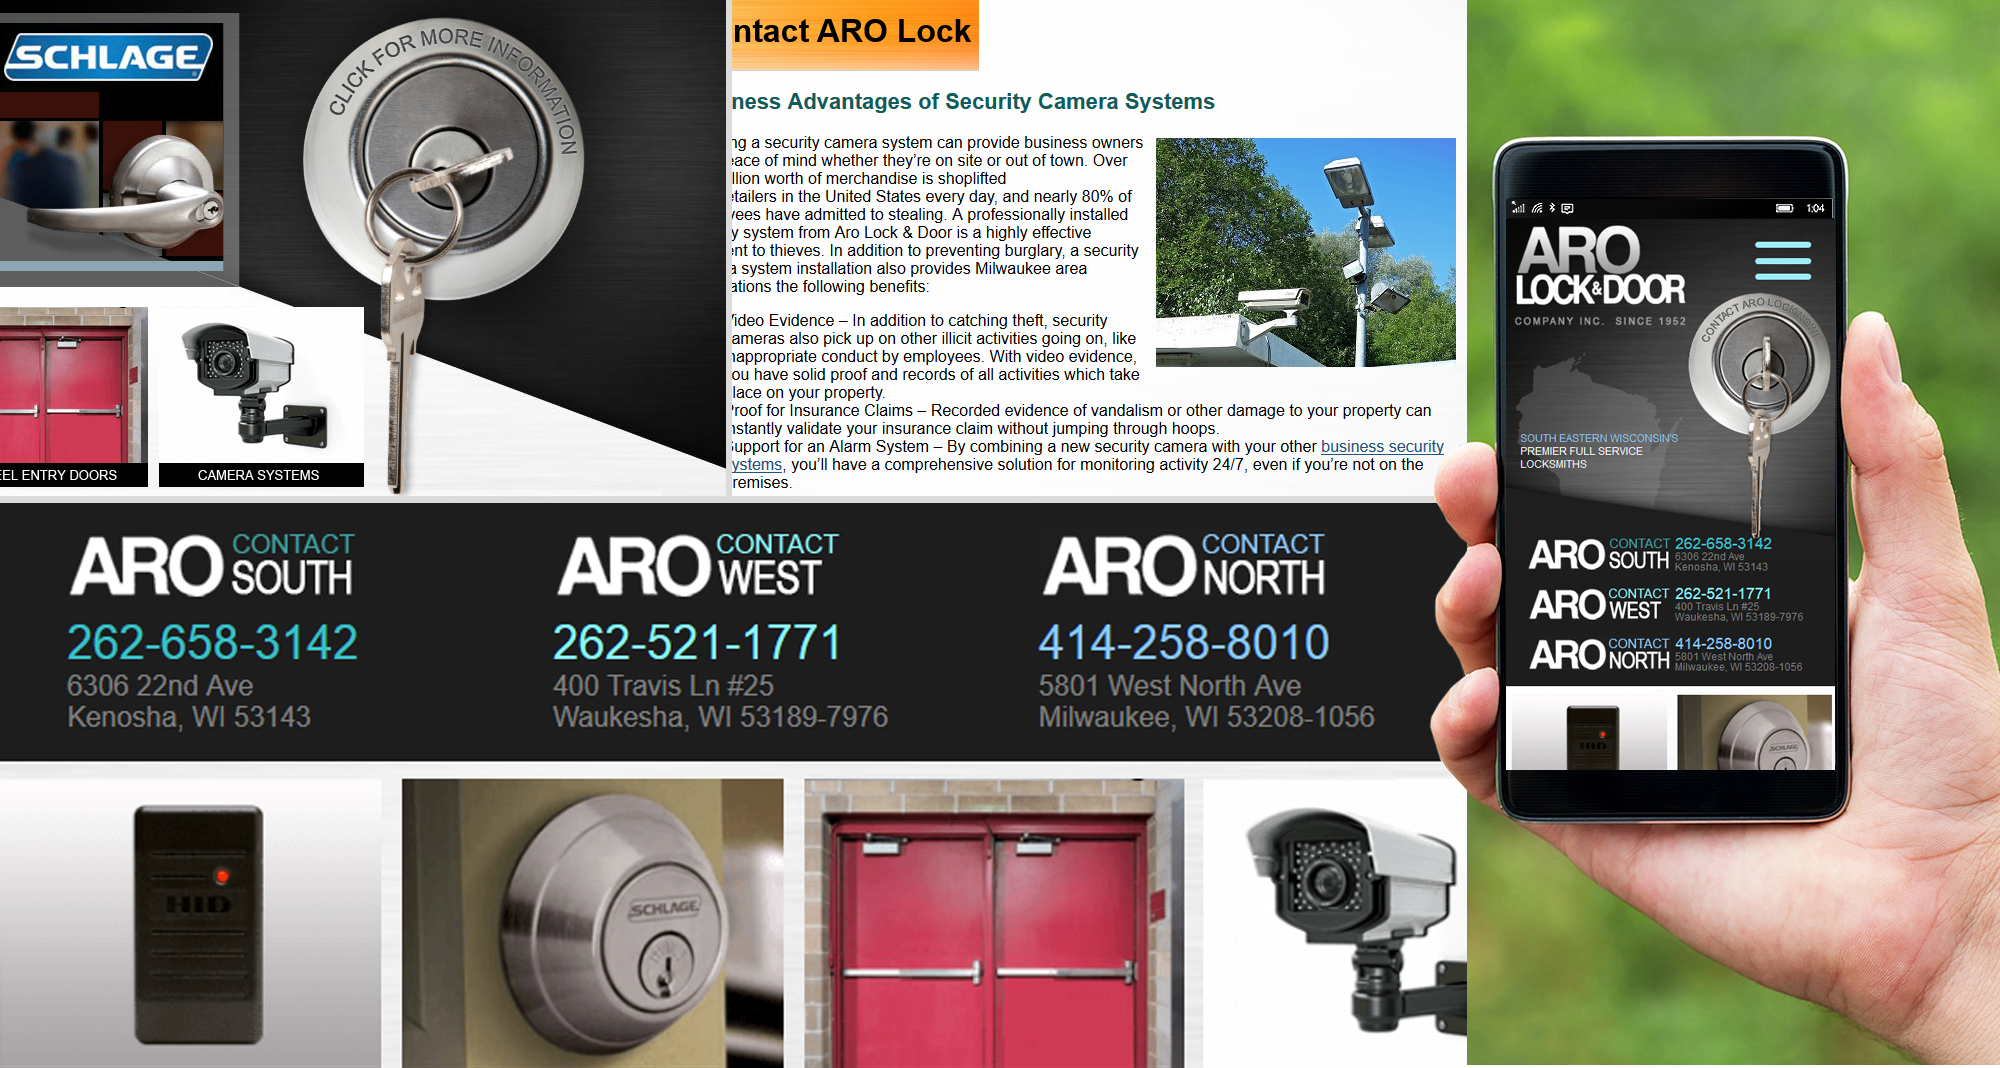 Milwaukee web marketing for Aro Lock & Door Company